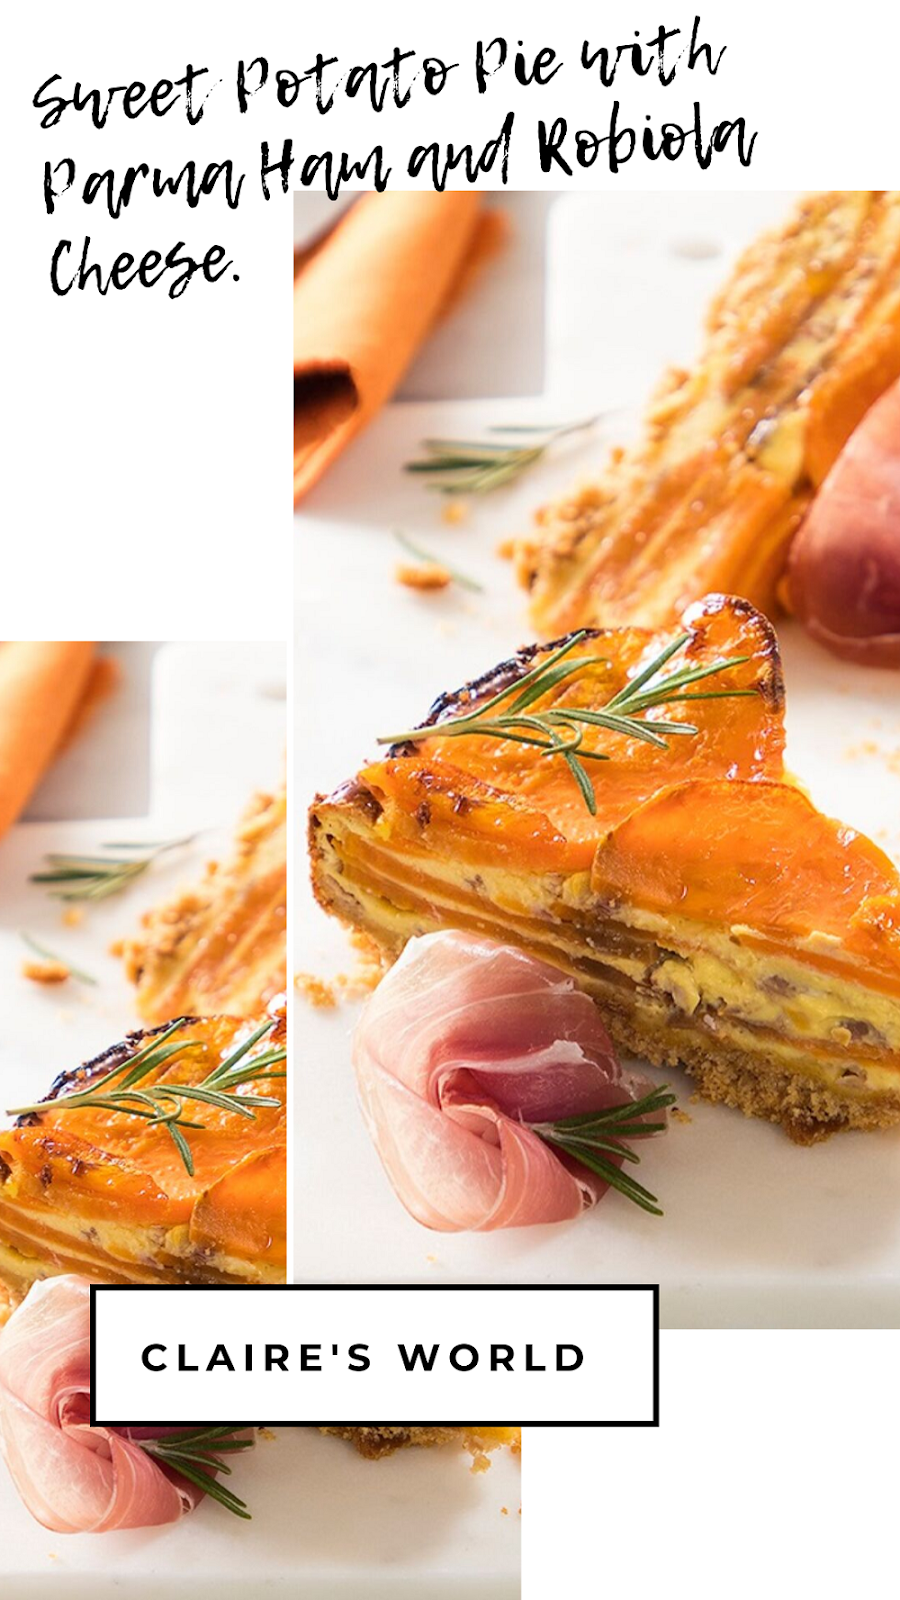 Sweet Potato Pie with Parma Ham and Robiola Cheese.